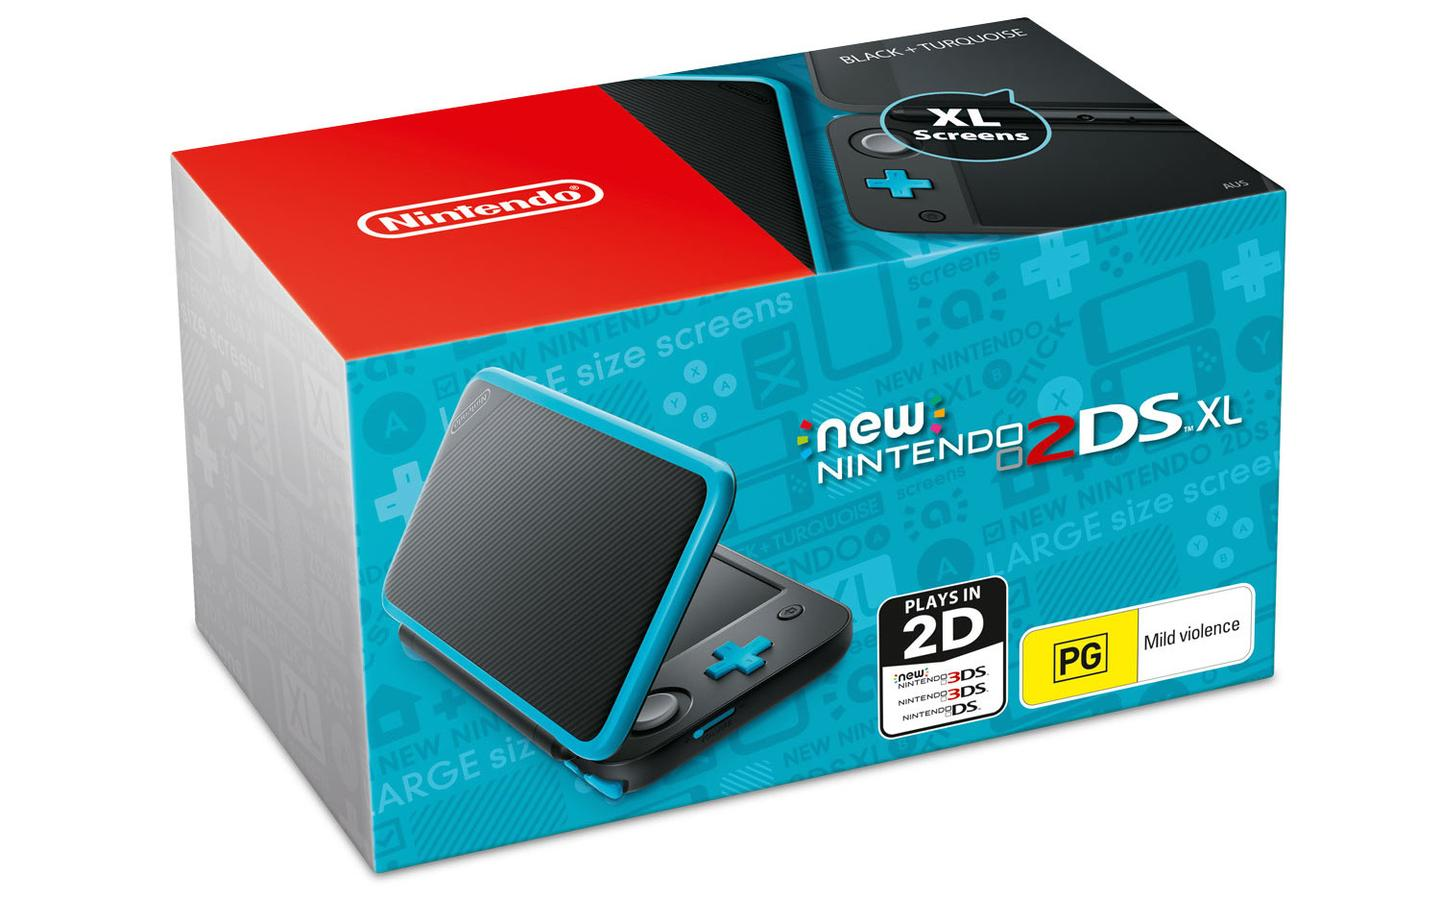 The New Nintendo 2DS XL will be available in North America on July 28, and will cost US$149.99